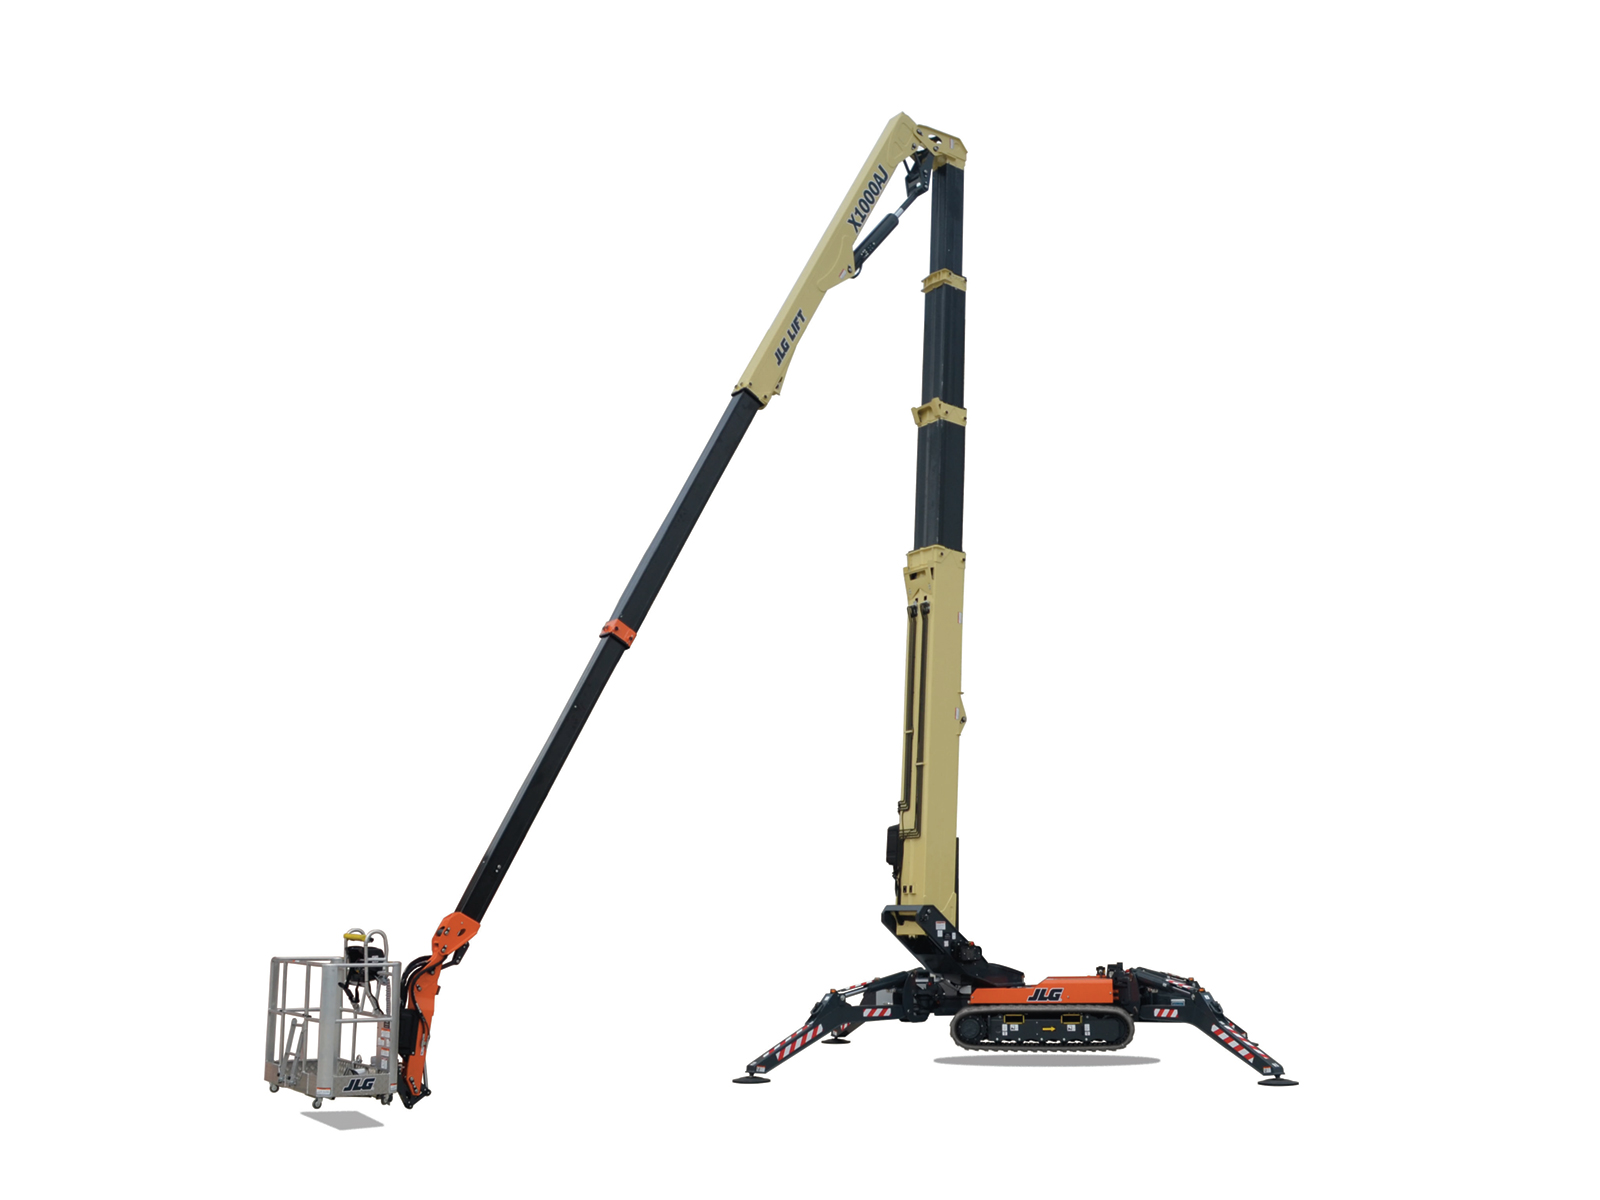 Skyguard Aftermarket Accessory For Jlg Boomlifts